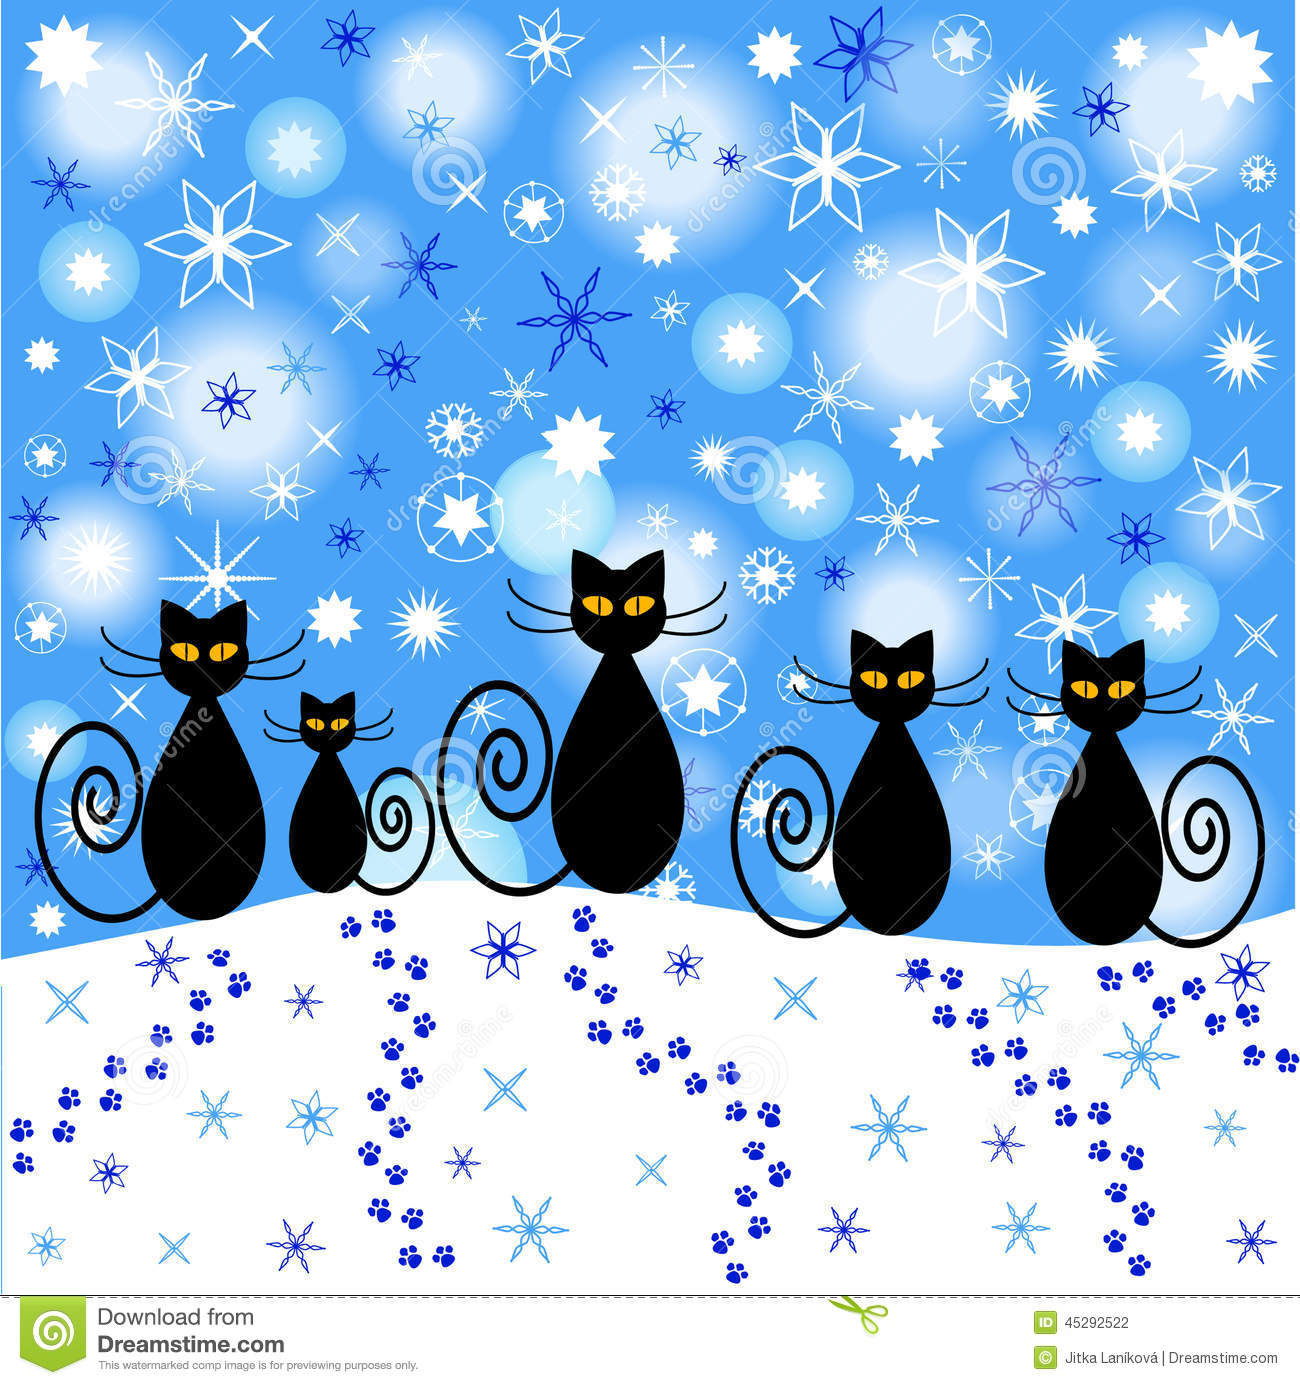 Kitten Mittens Flag - Mad About Gardening  |Winter Scenes With Cats